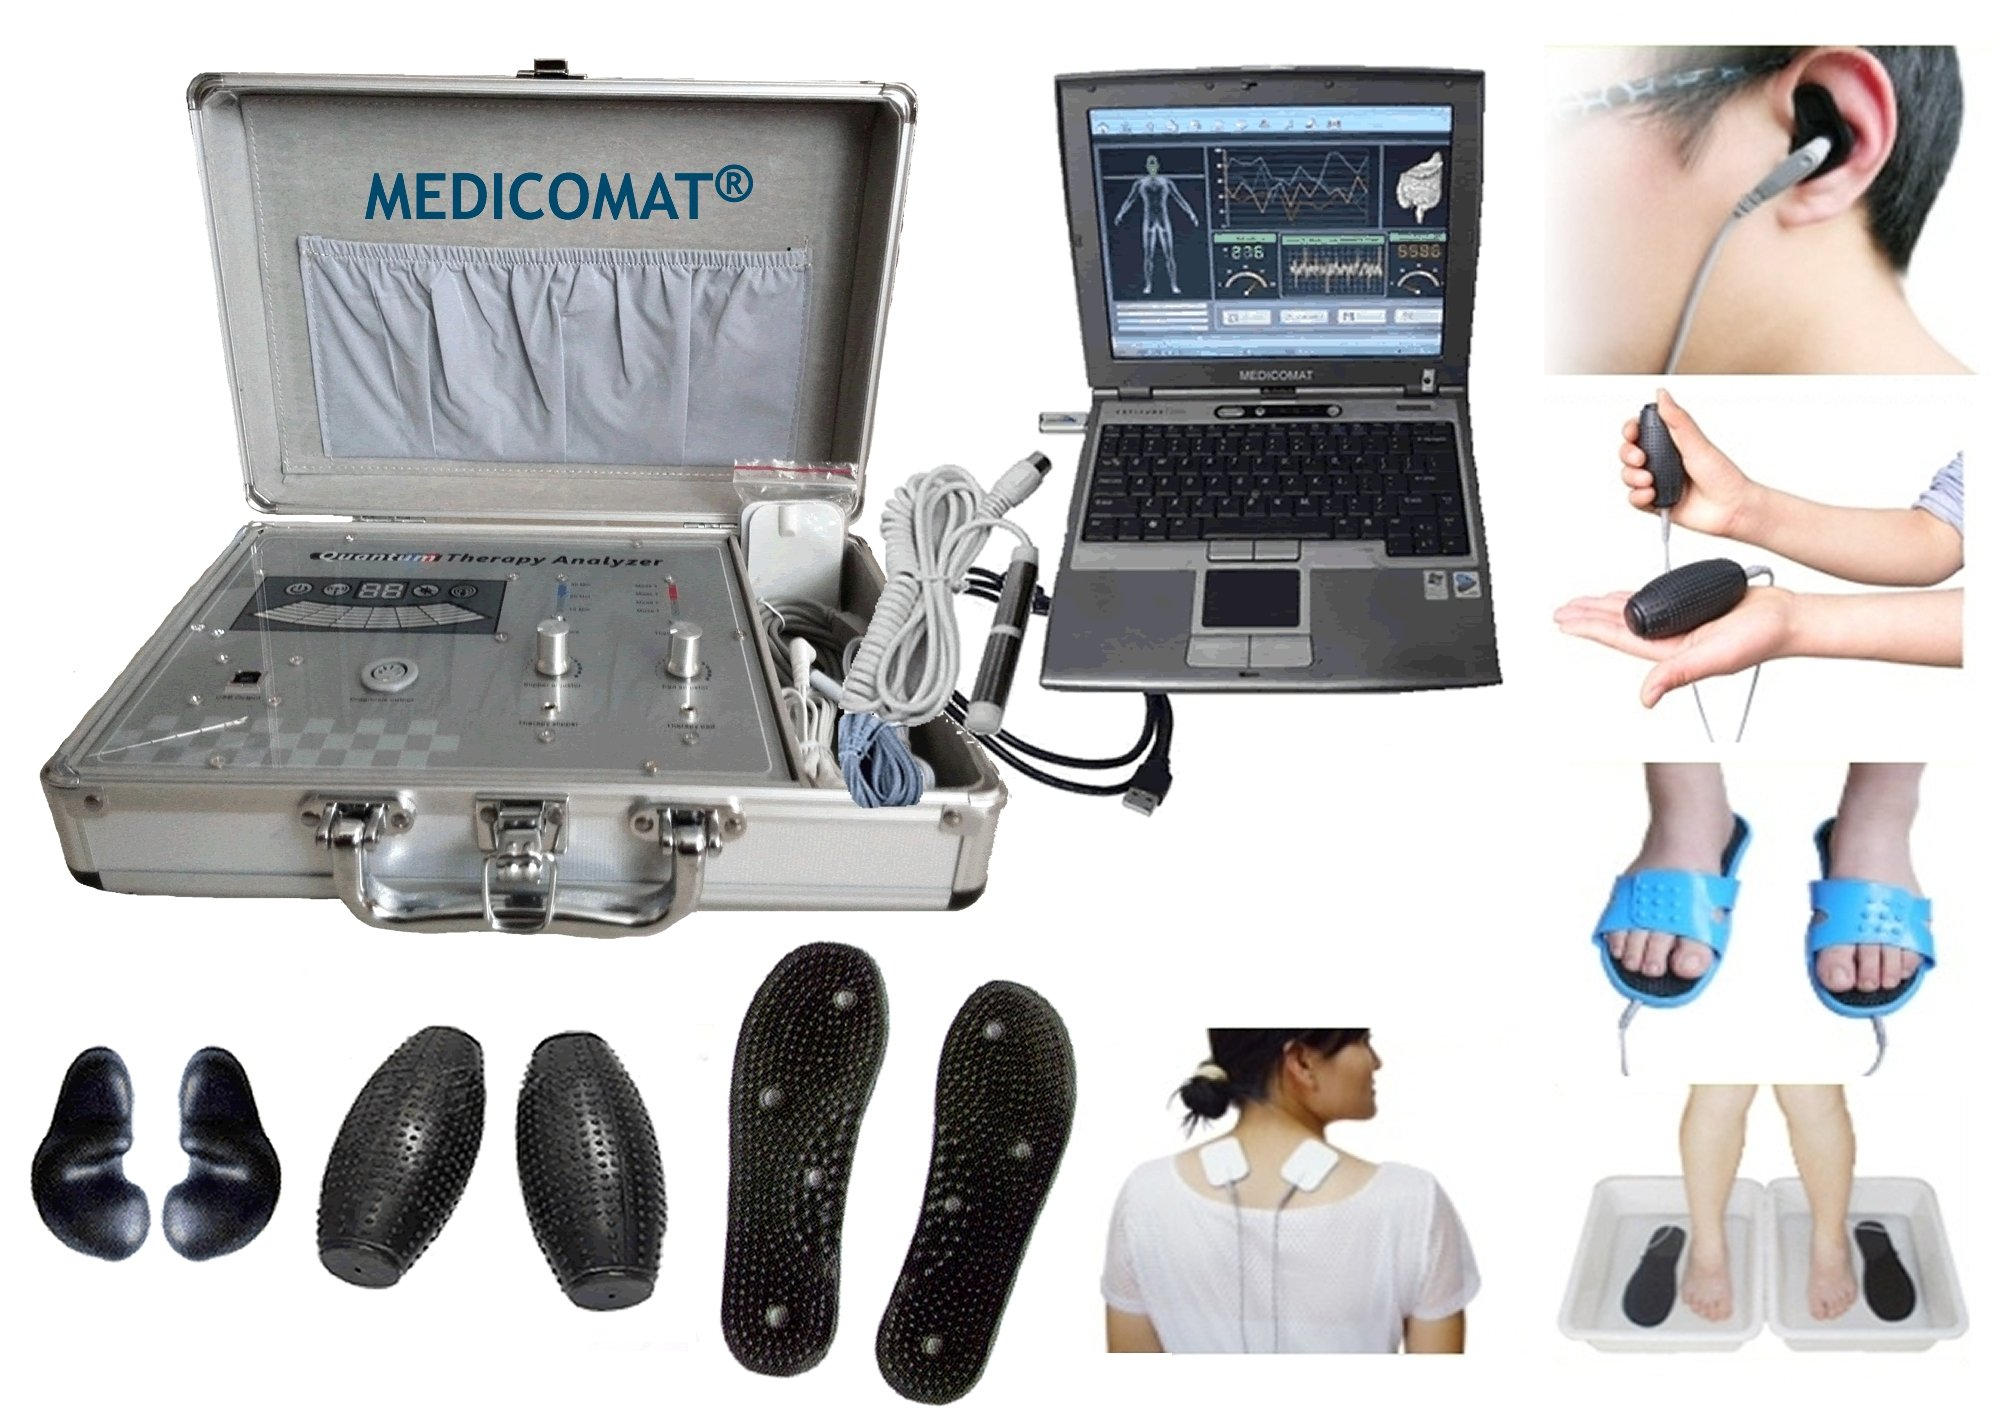 Health Screening and Balancing Medicomat by Medicomat